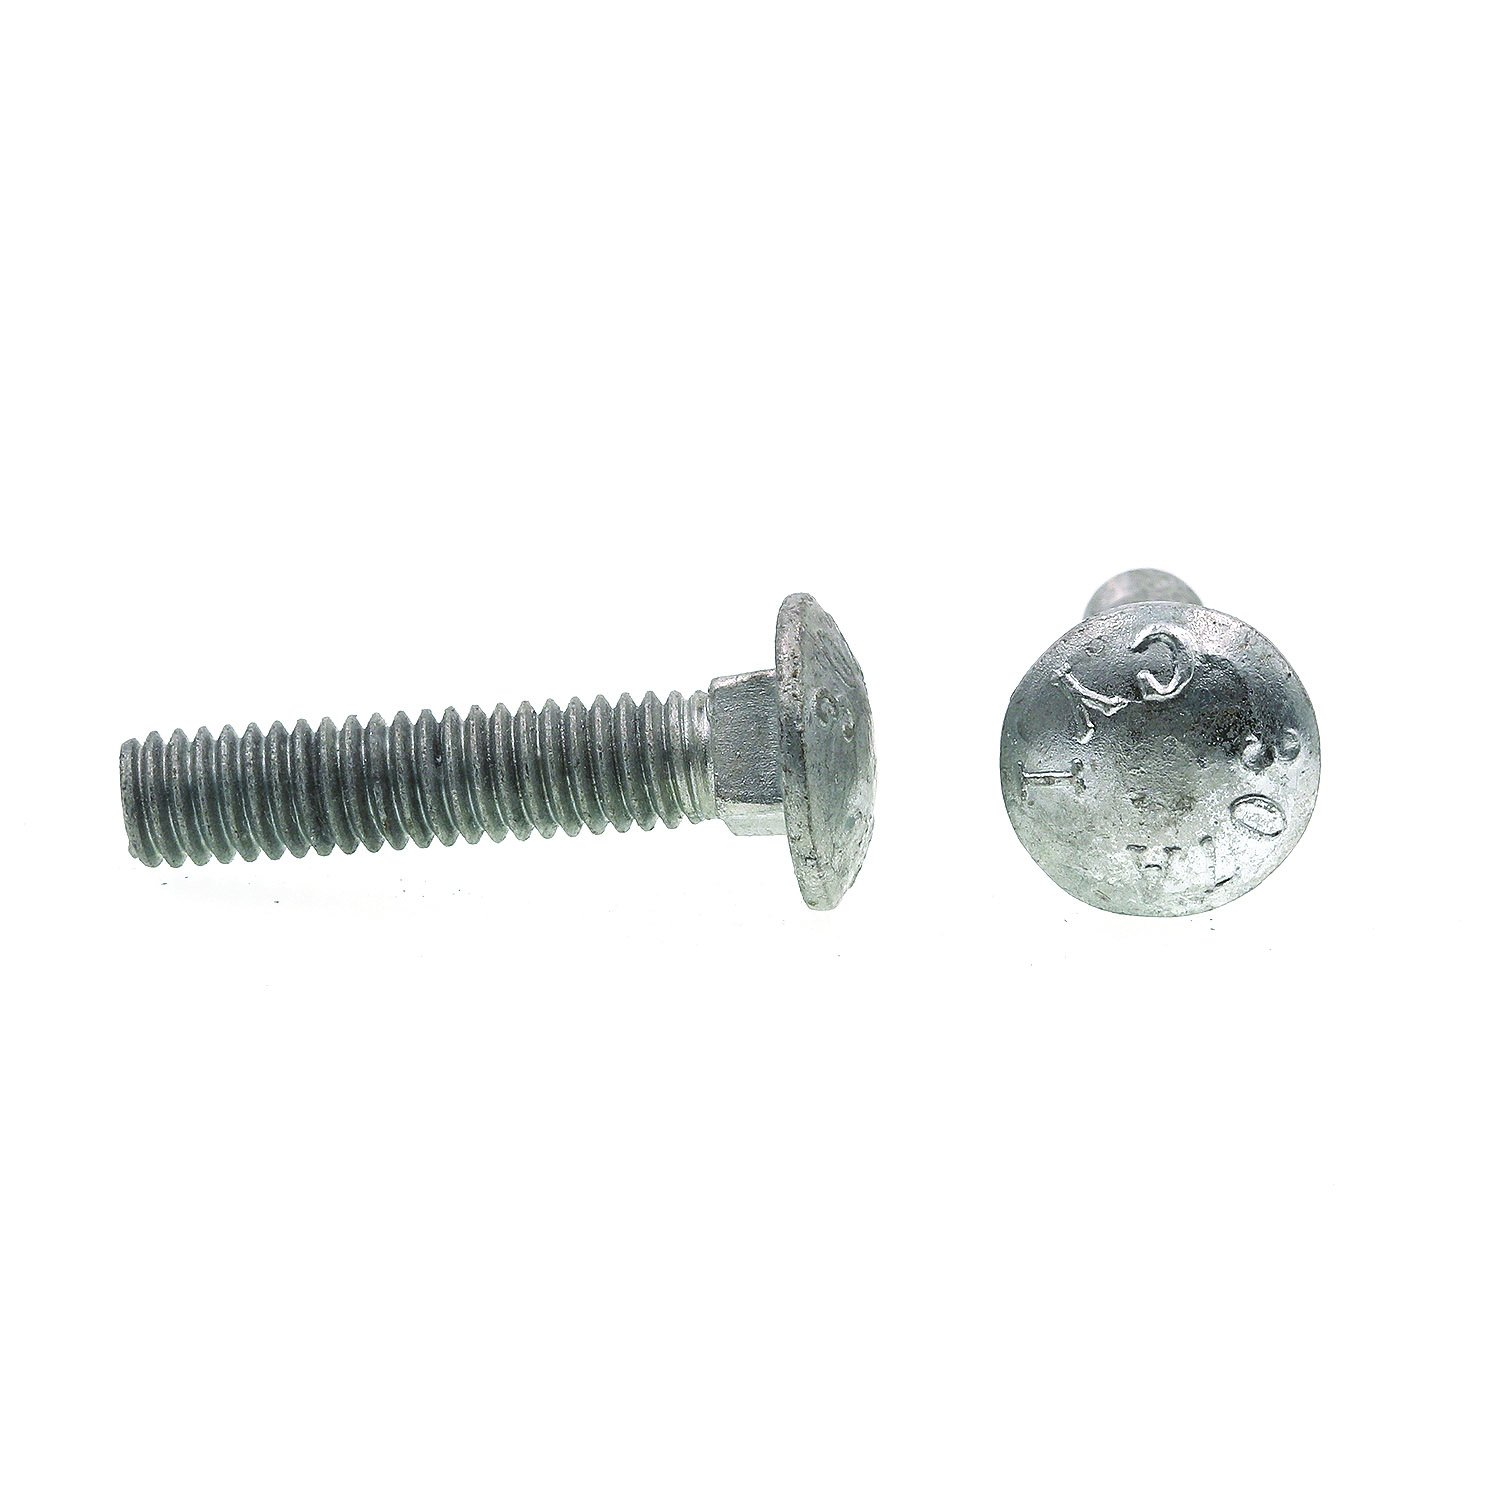 100-Pack A307 Grade A Hot Dip Galvanized Steel Prime-Line 9062927 Carriage Bolts 5//16 in.-18 X 1-1//2 in.